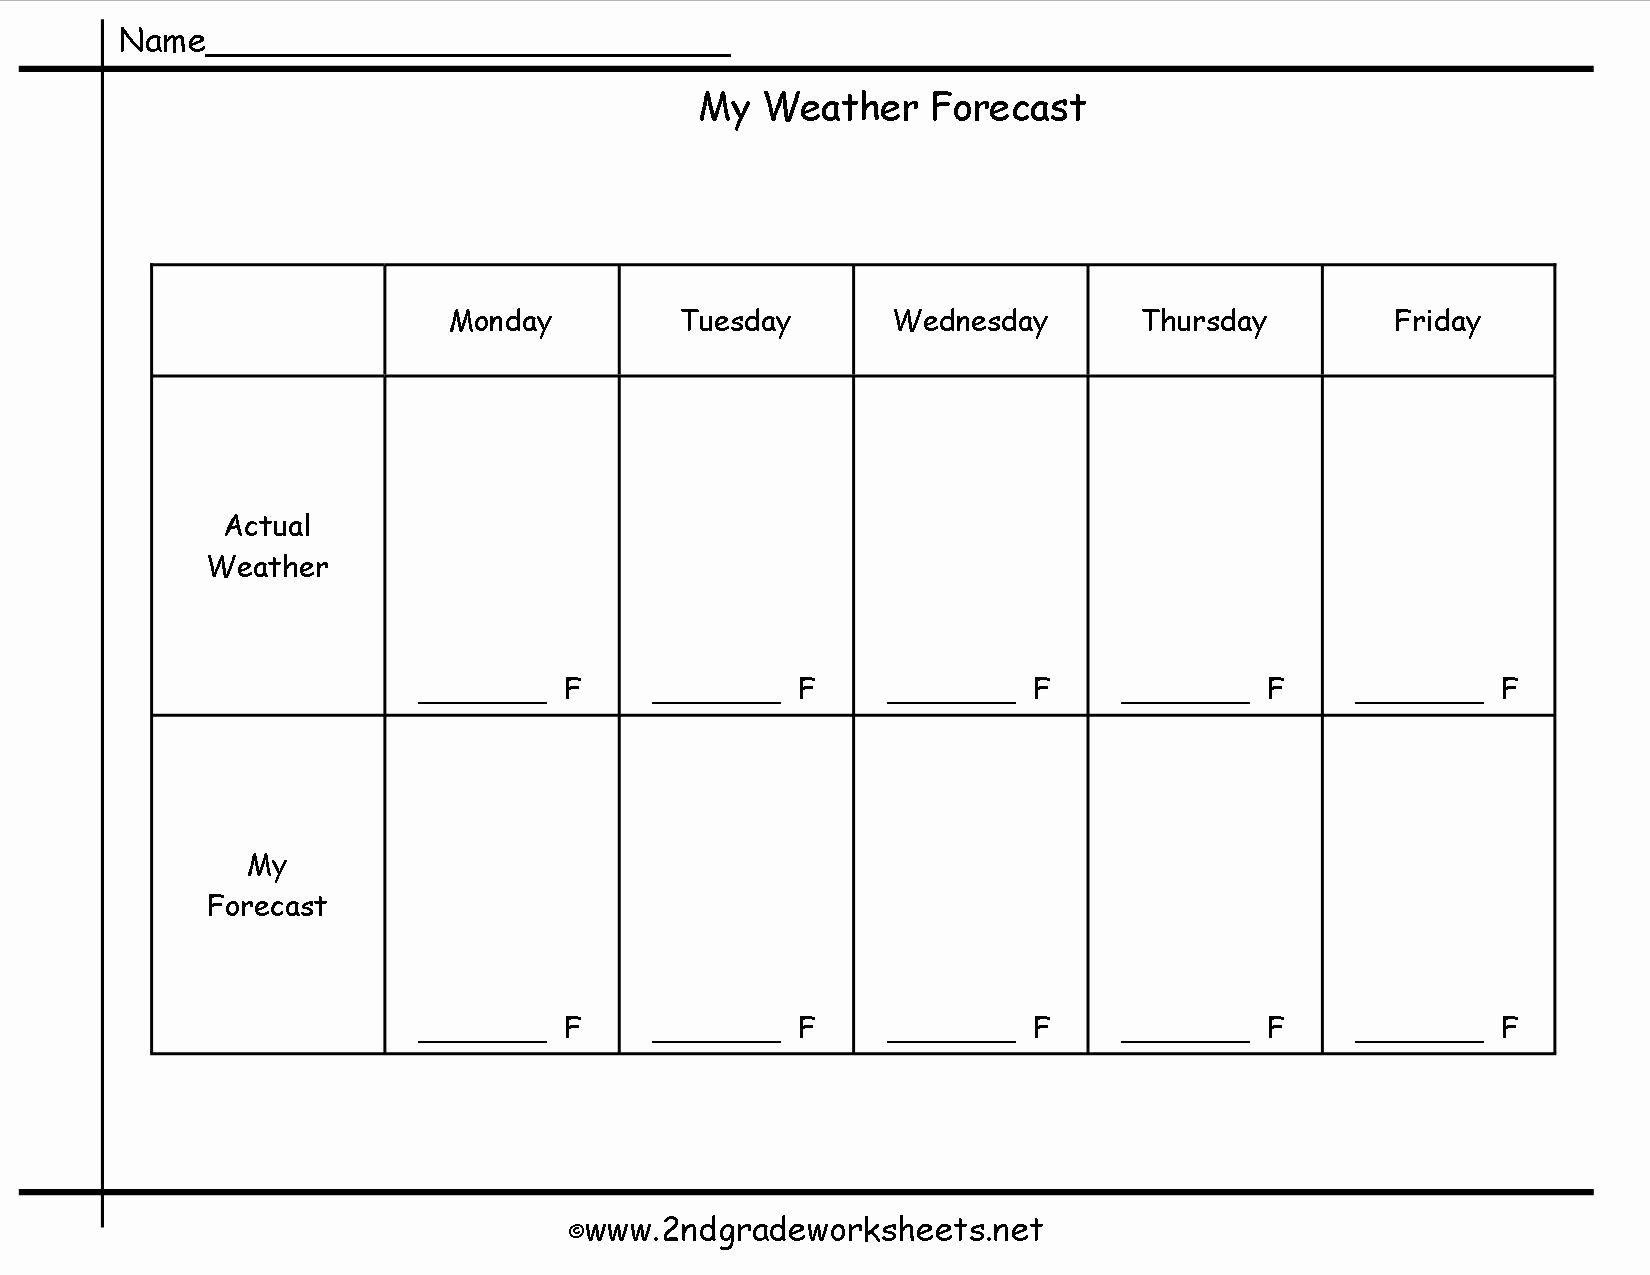 Forecasting Weather Map Worksheet 1 Awesome Weather forecasting Worksheet